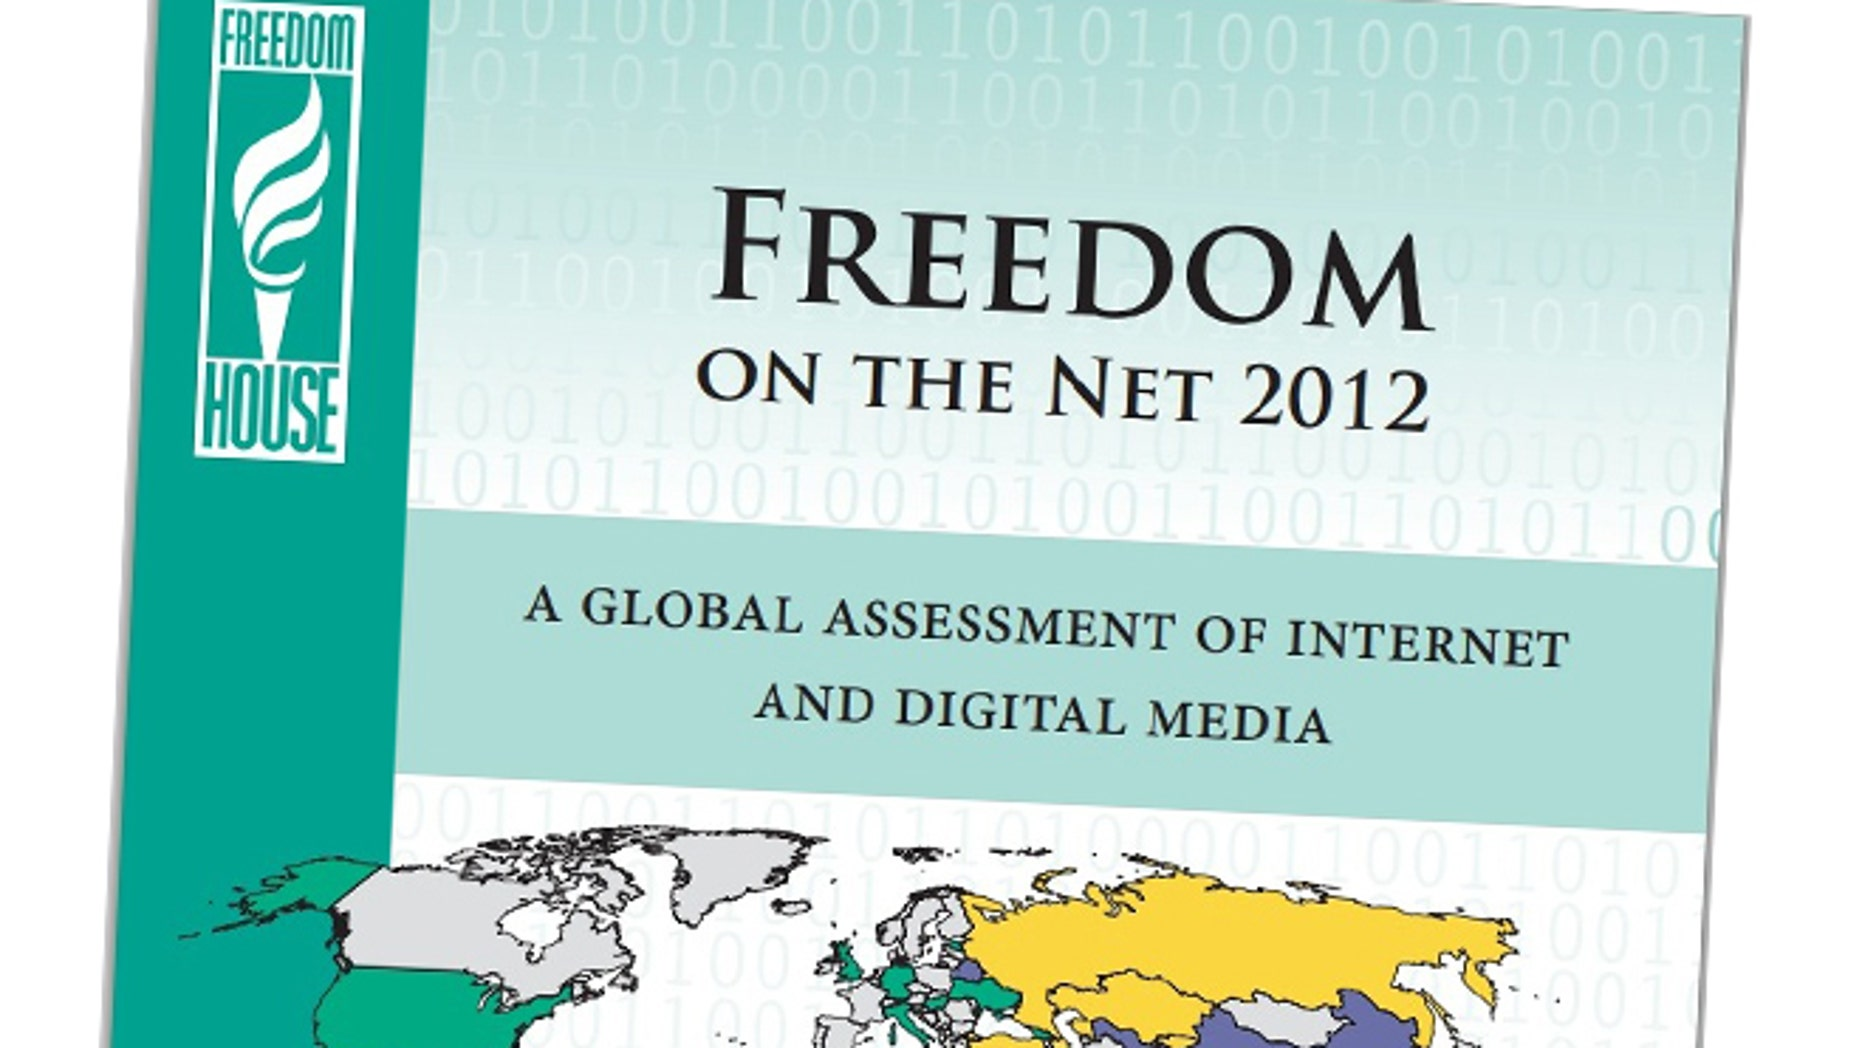 Sept. 24, 2012: A report from Freedom House details Internet access and censorship, from Argentina to Zimbabwe.